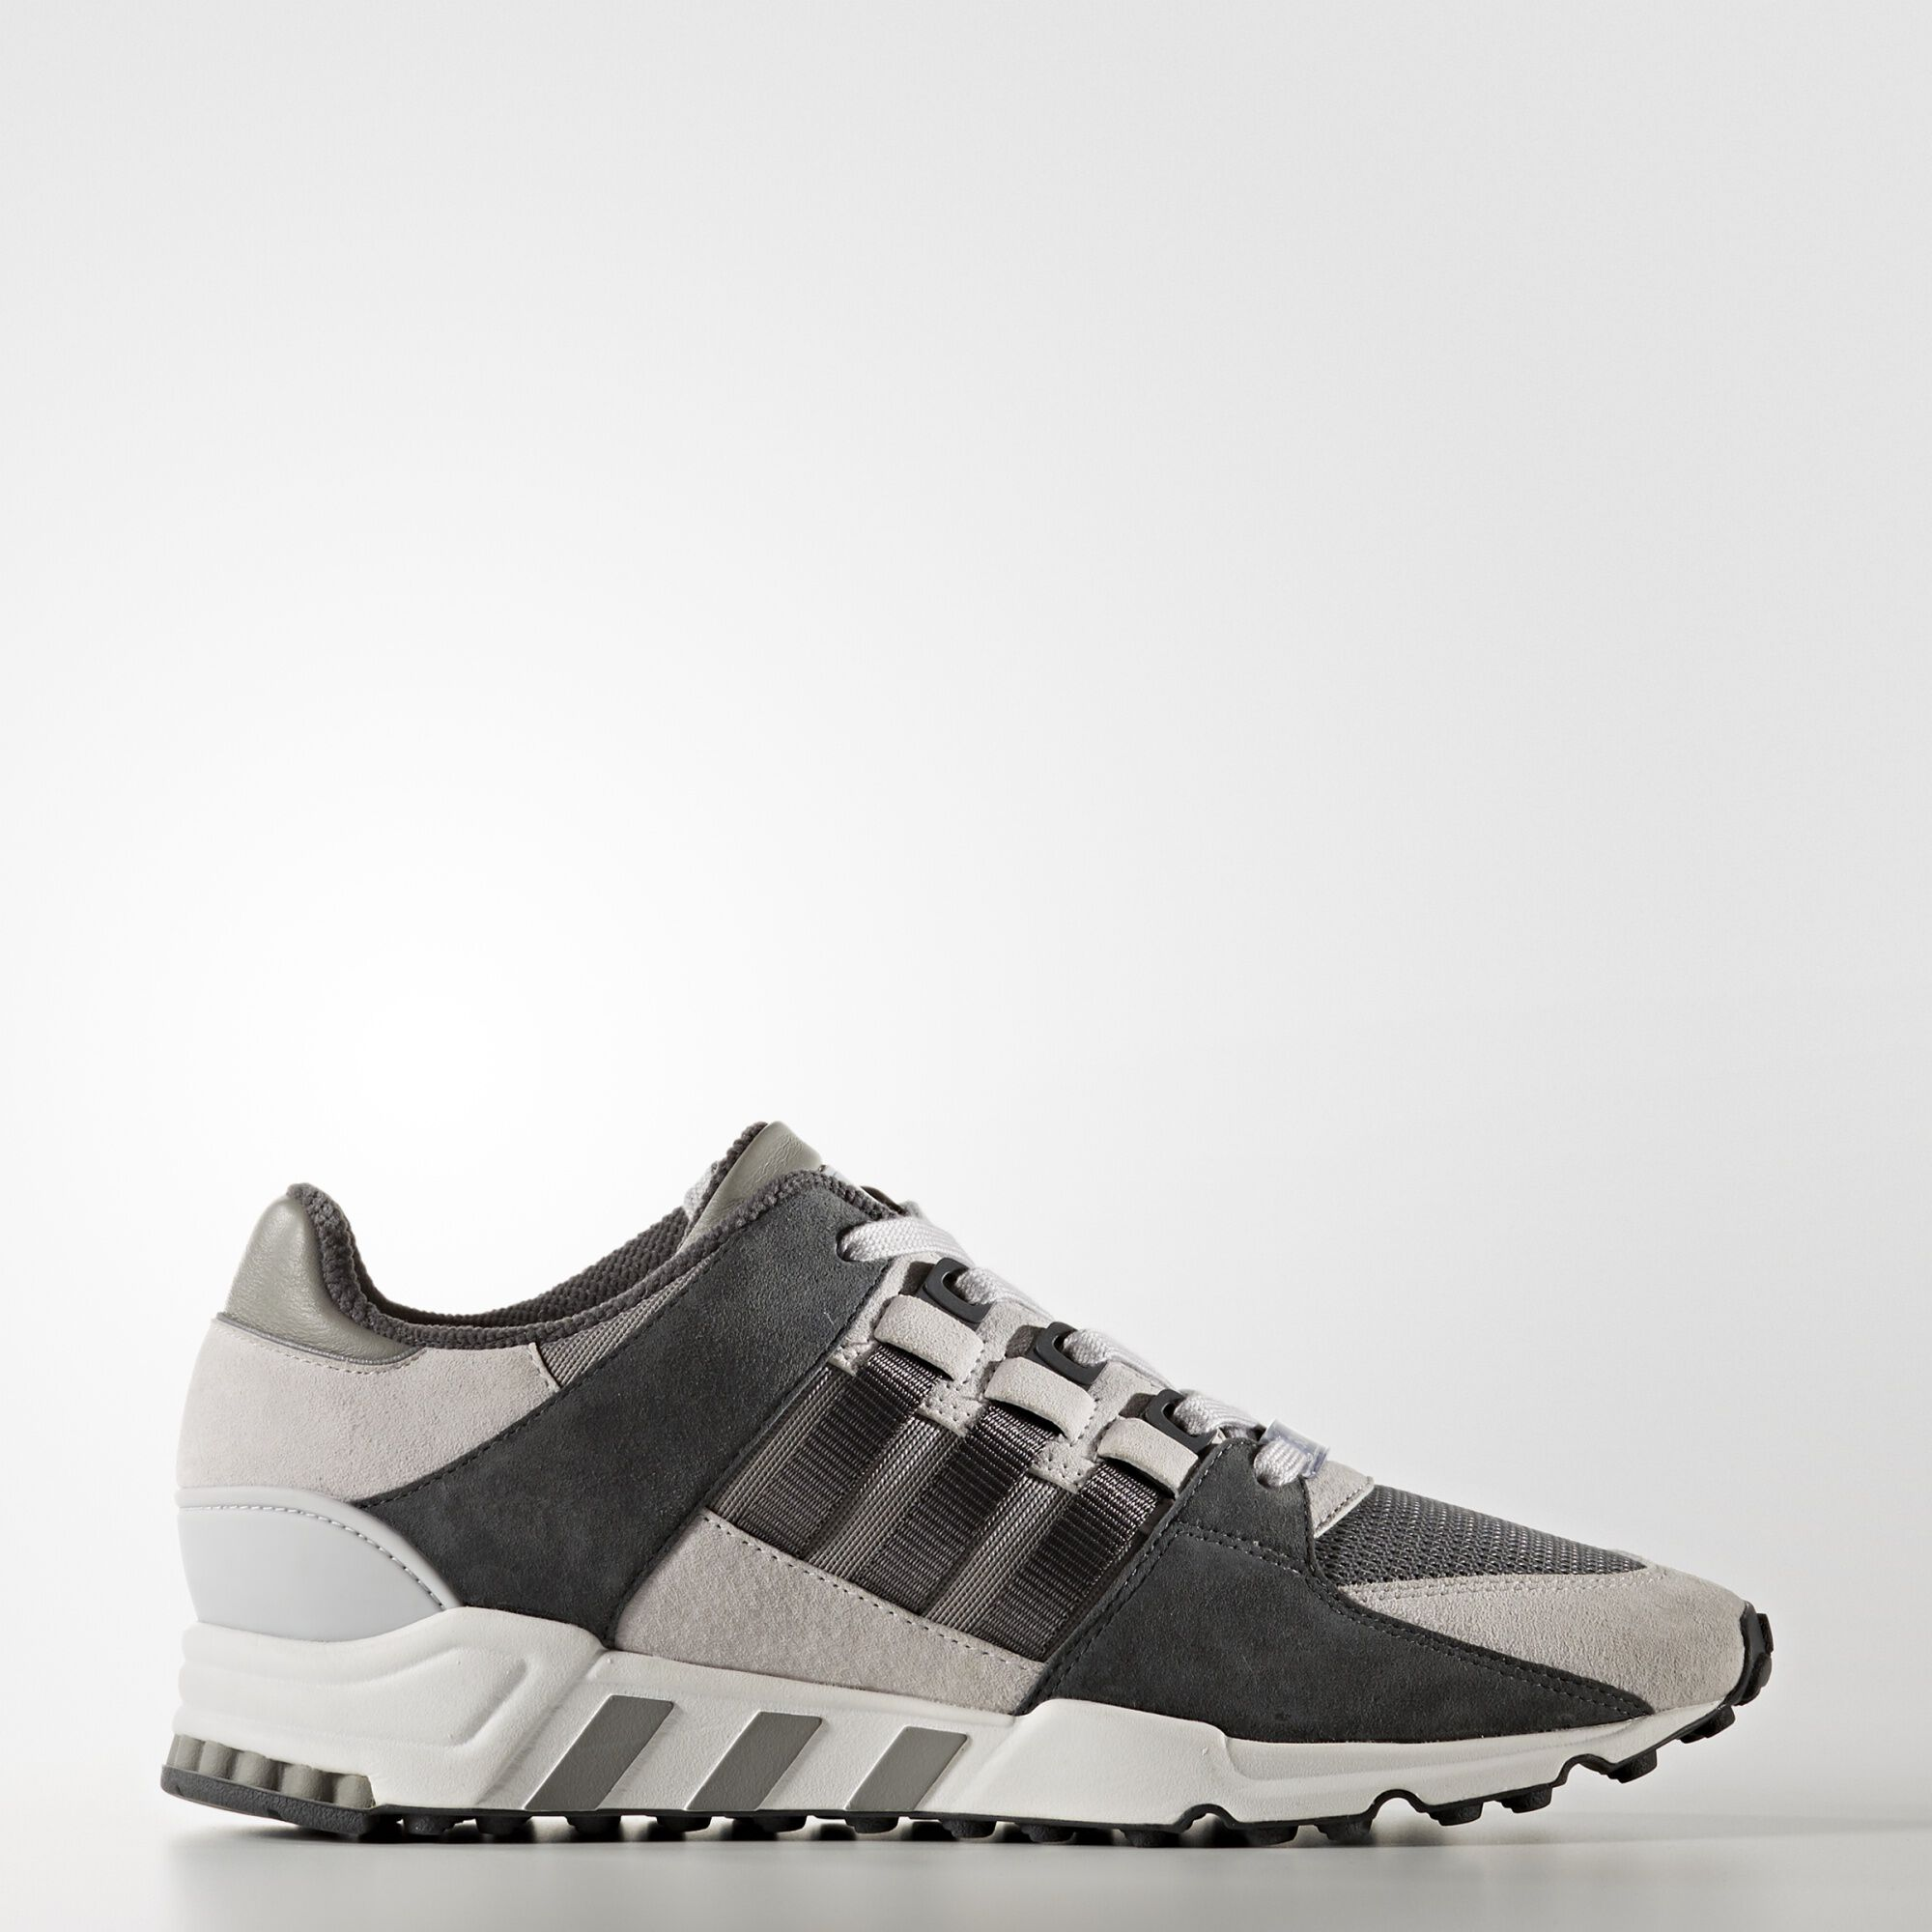 adidas EQT Support 93/17 Royal White BZ0592